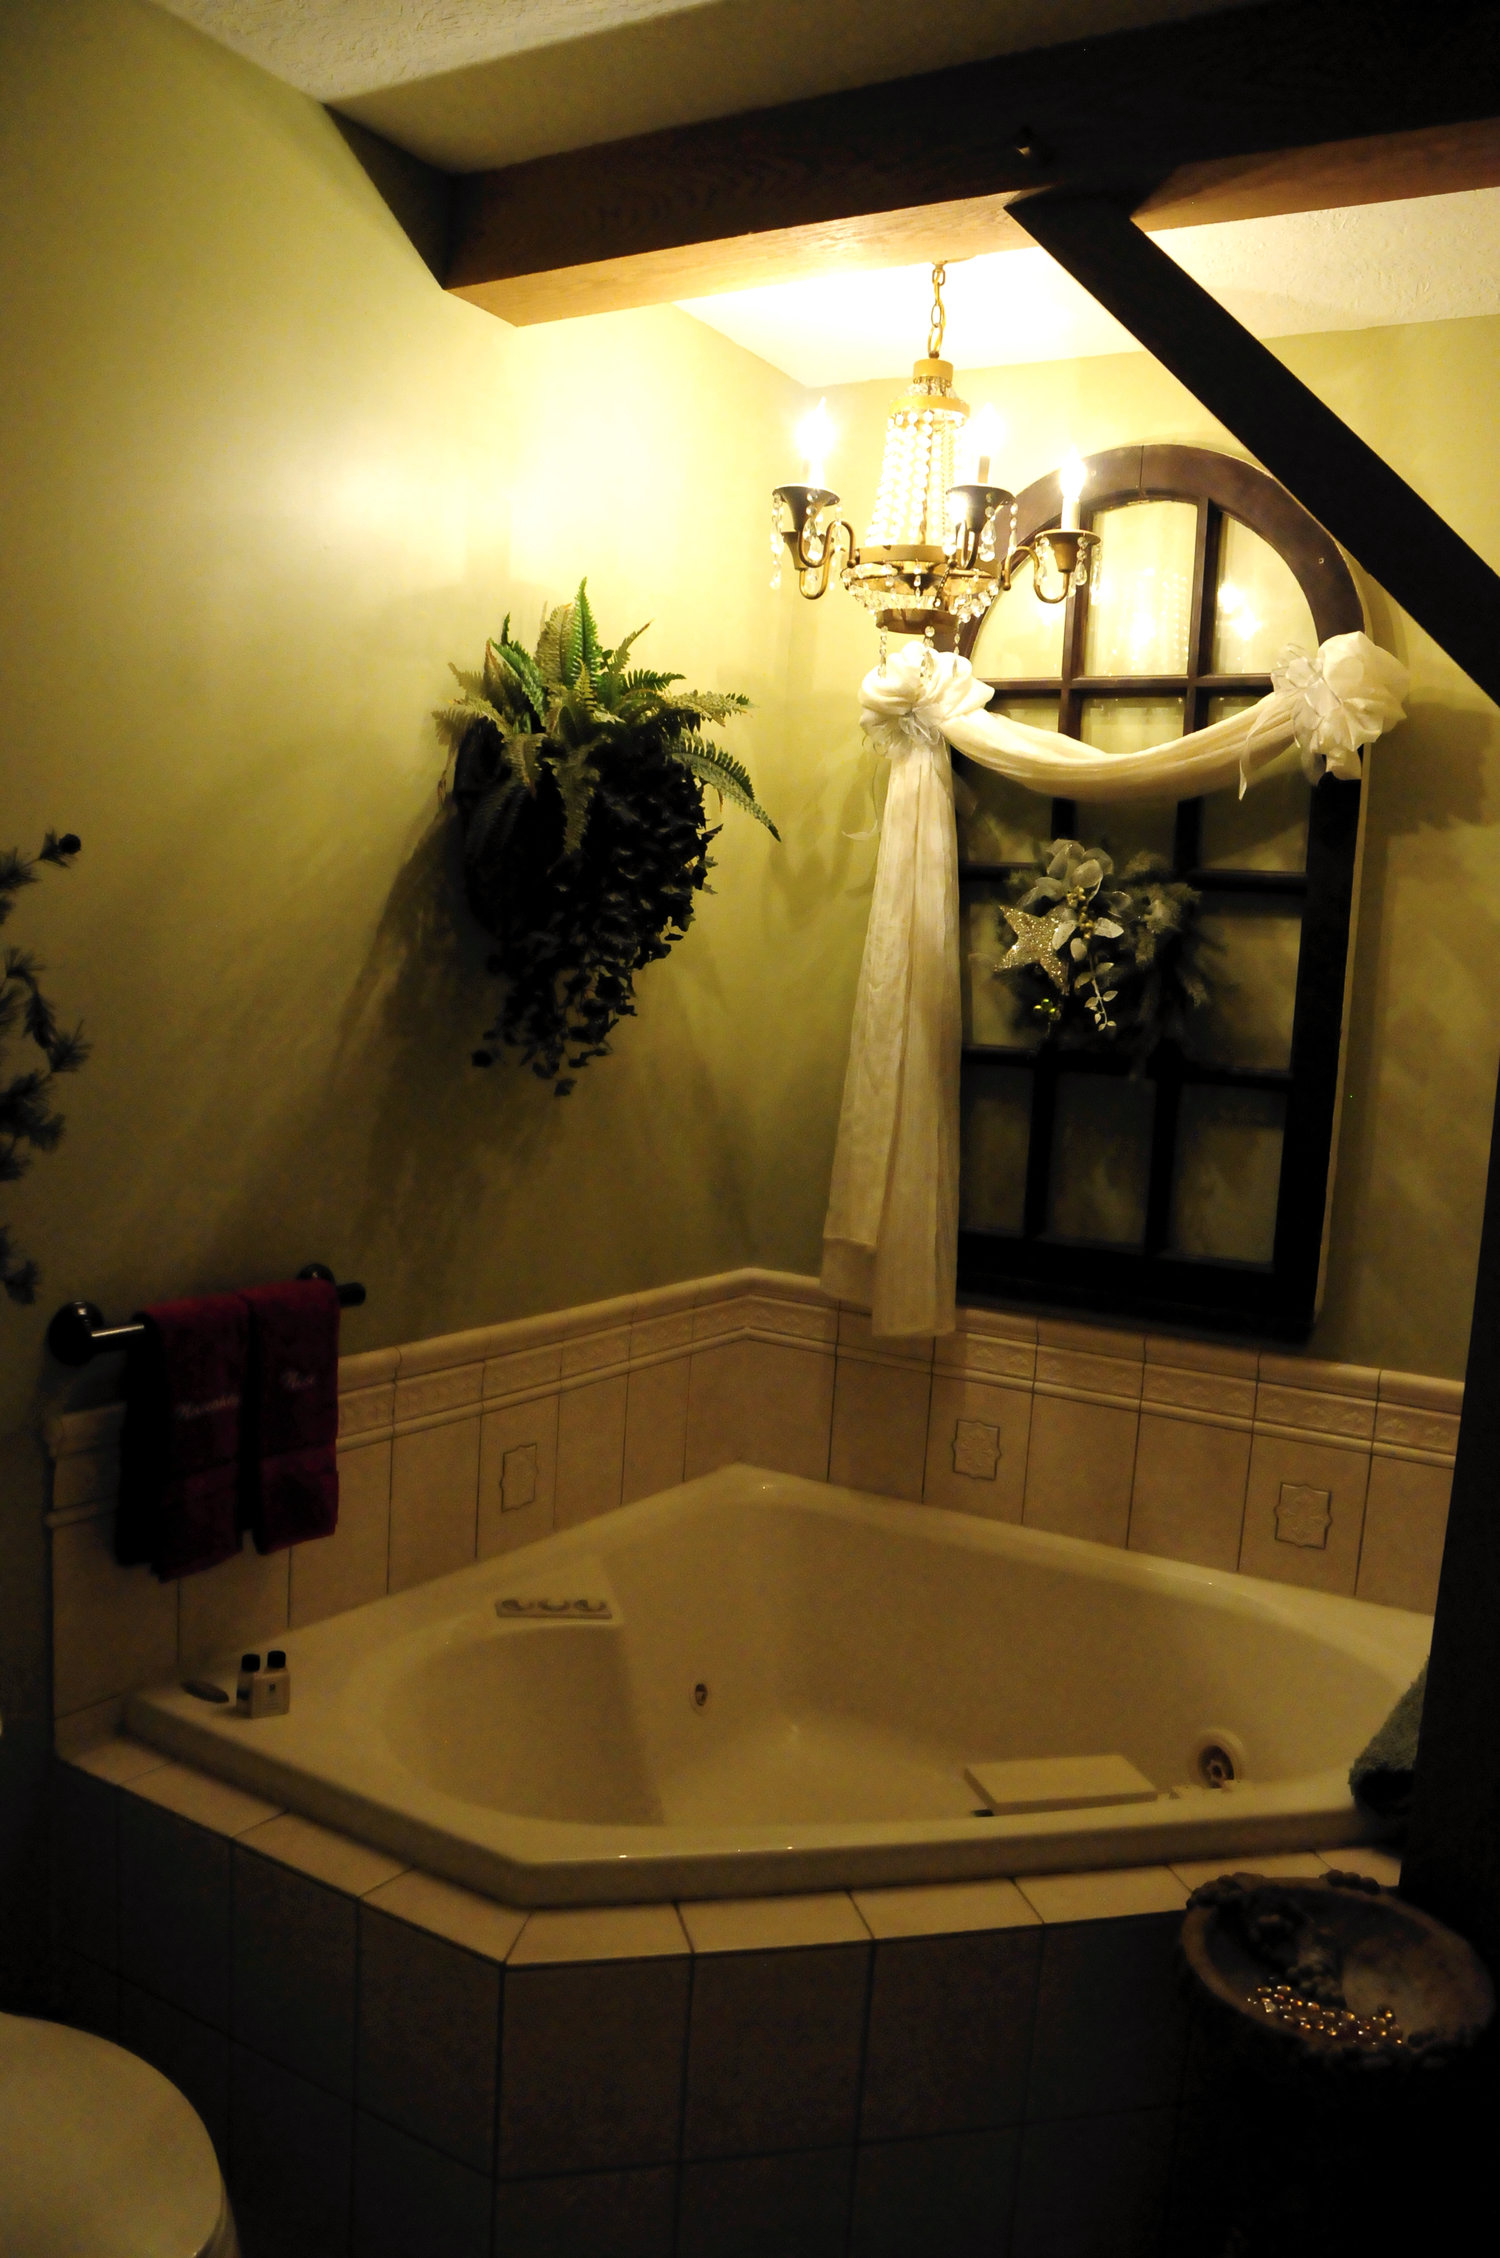 staying afloat in the bathtub business how to break into and succeed in the refinishing industry